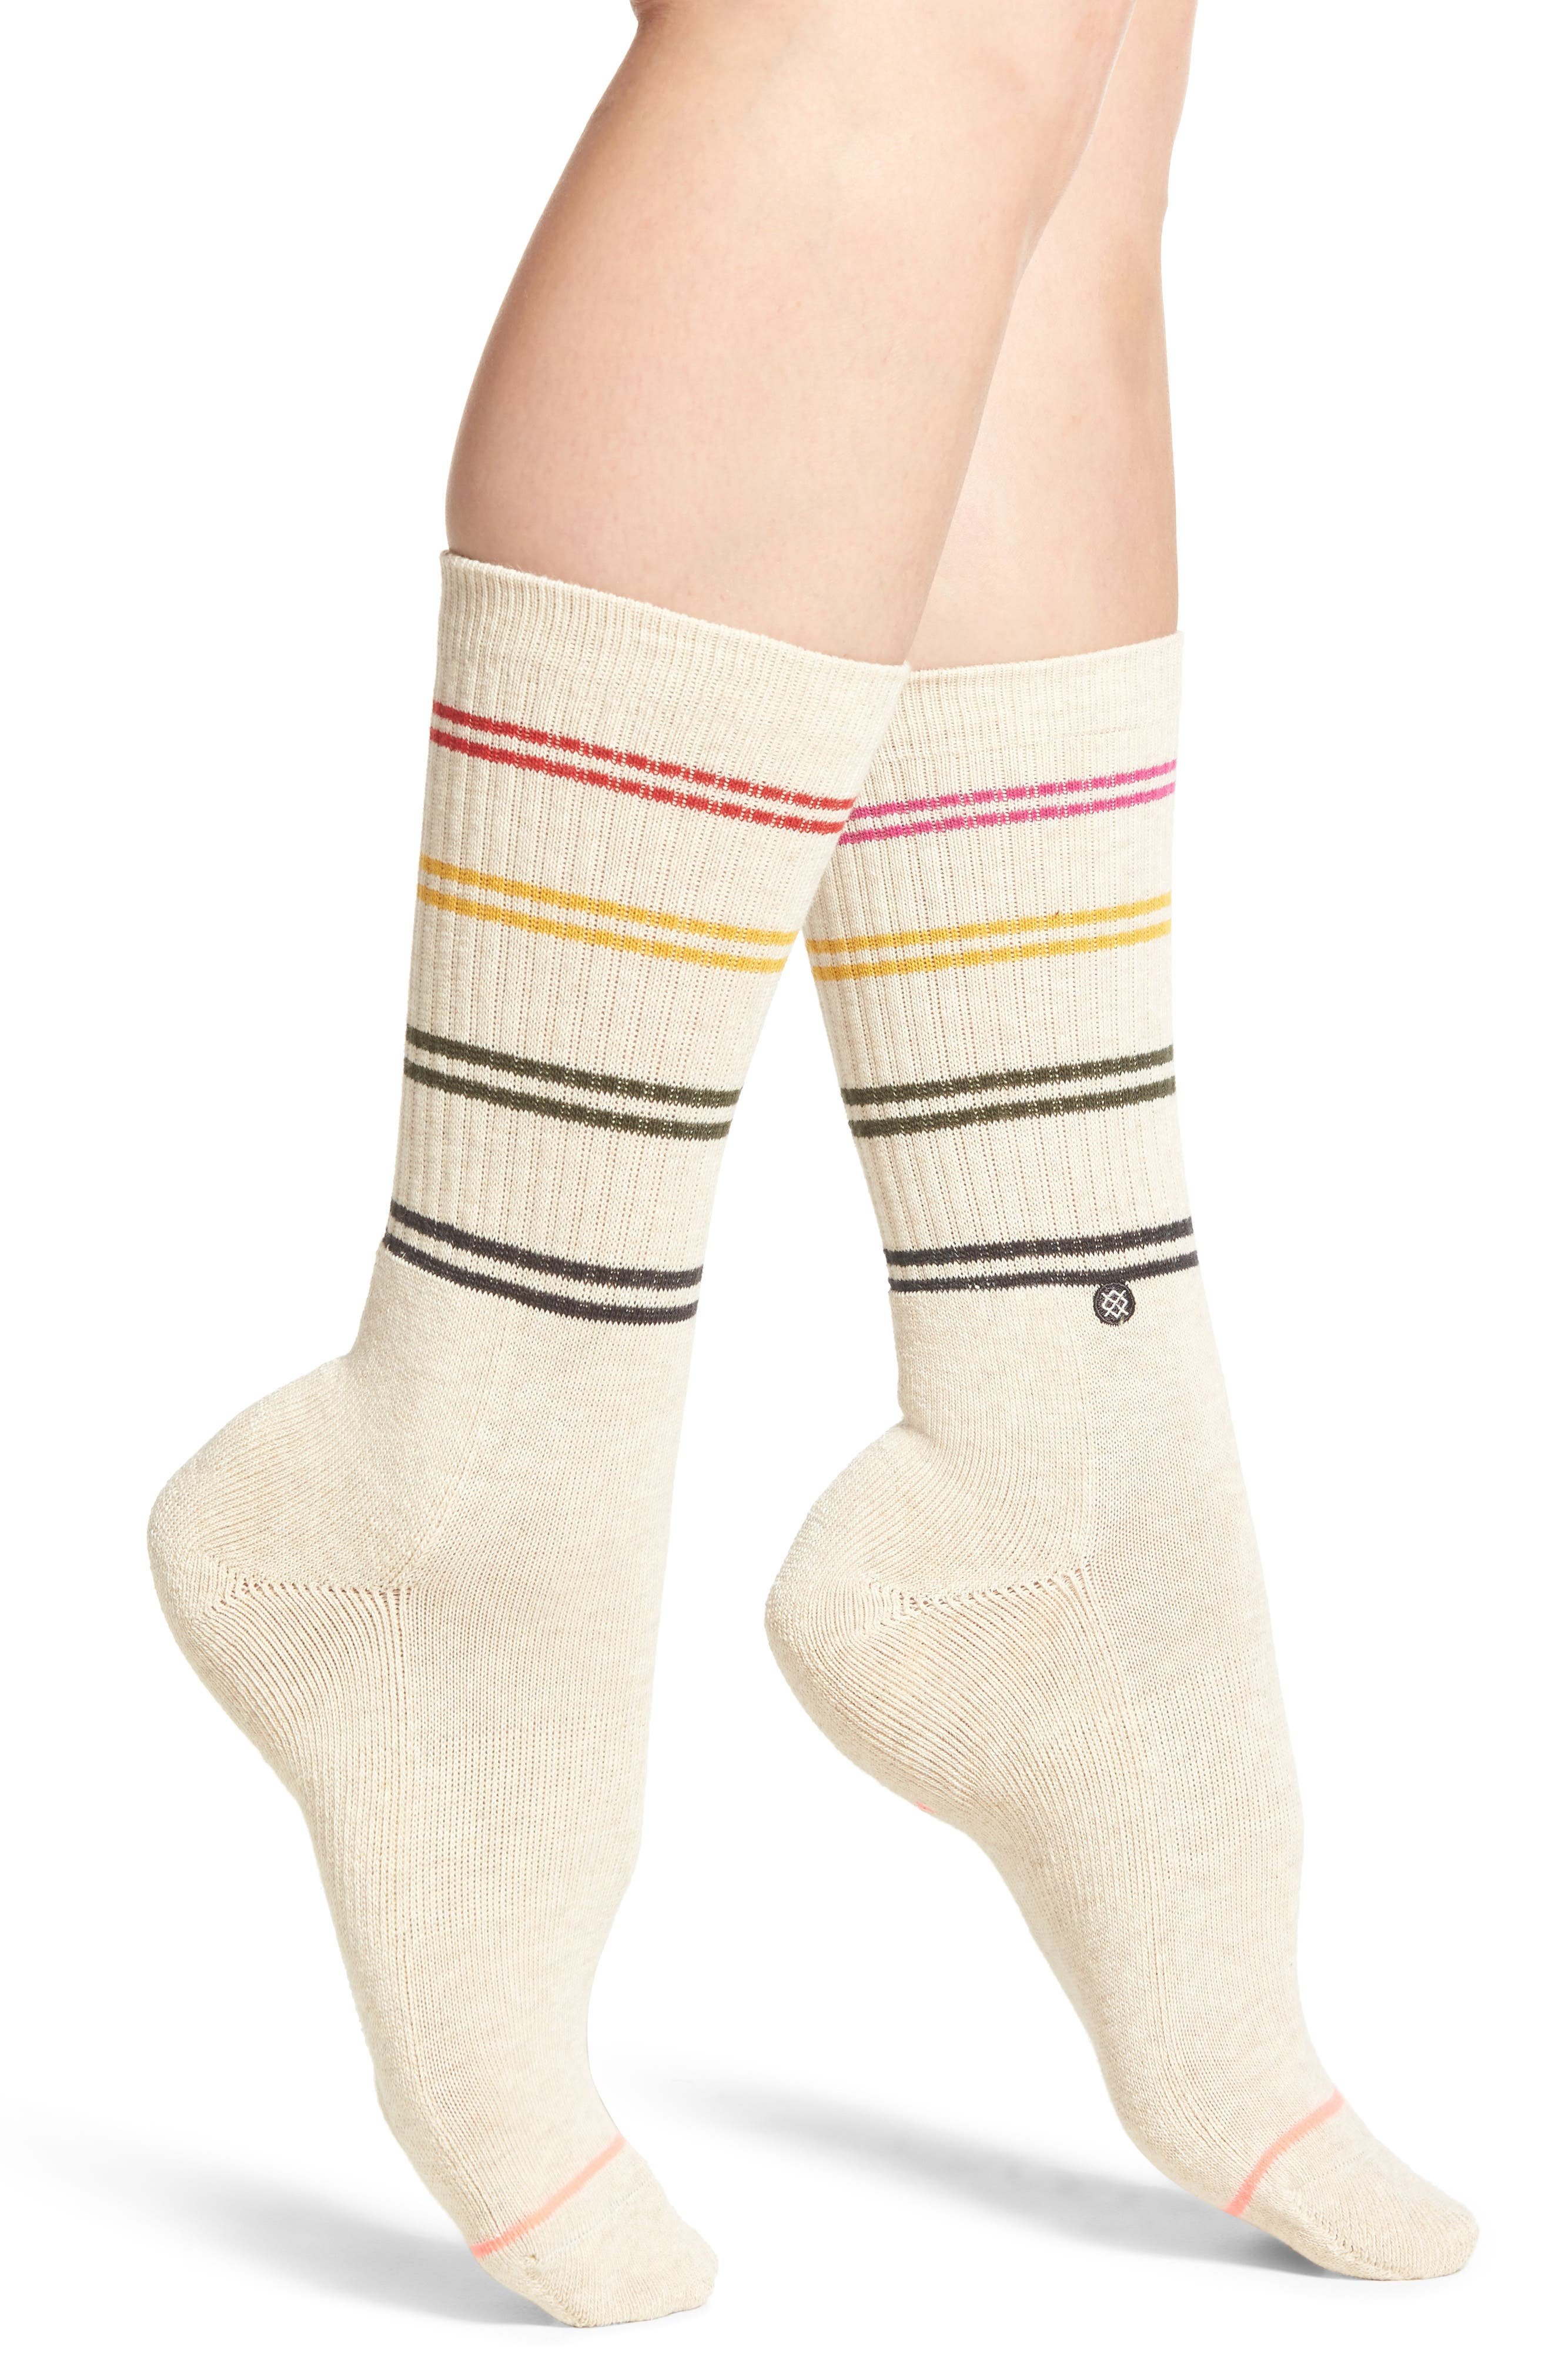 Jah Crew Socks,                         Main,                         color, 250